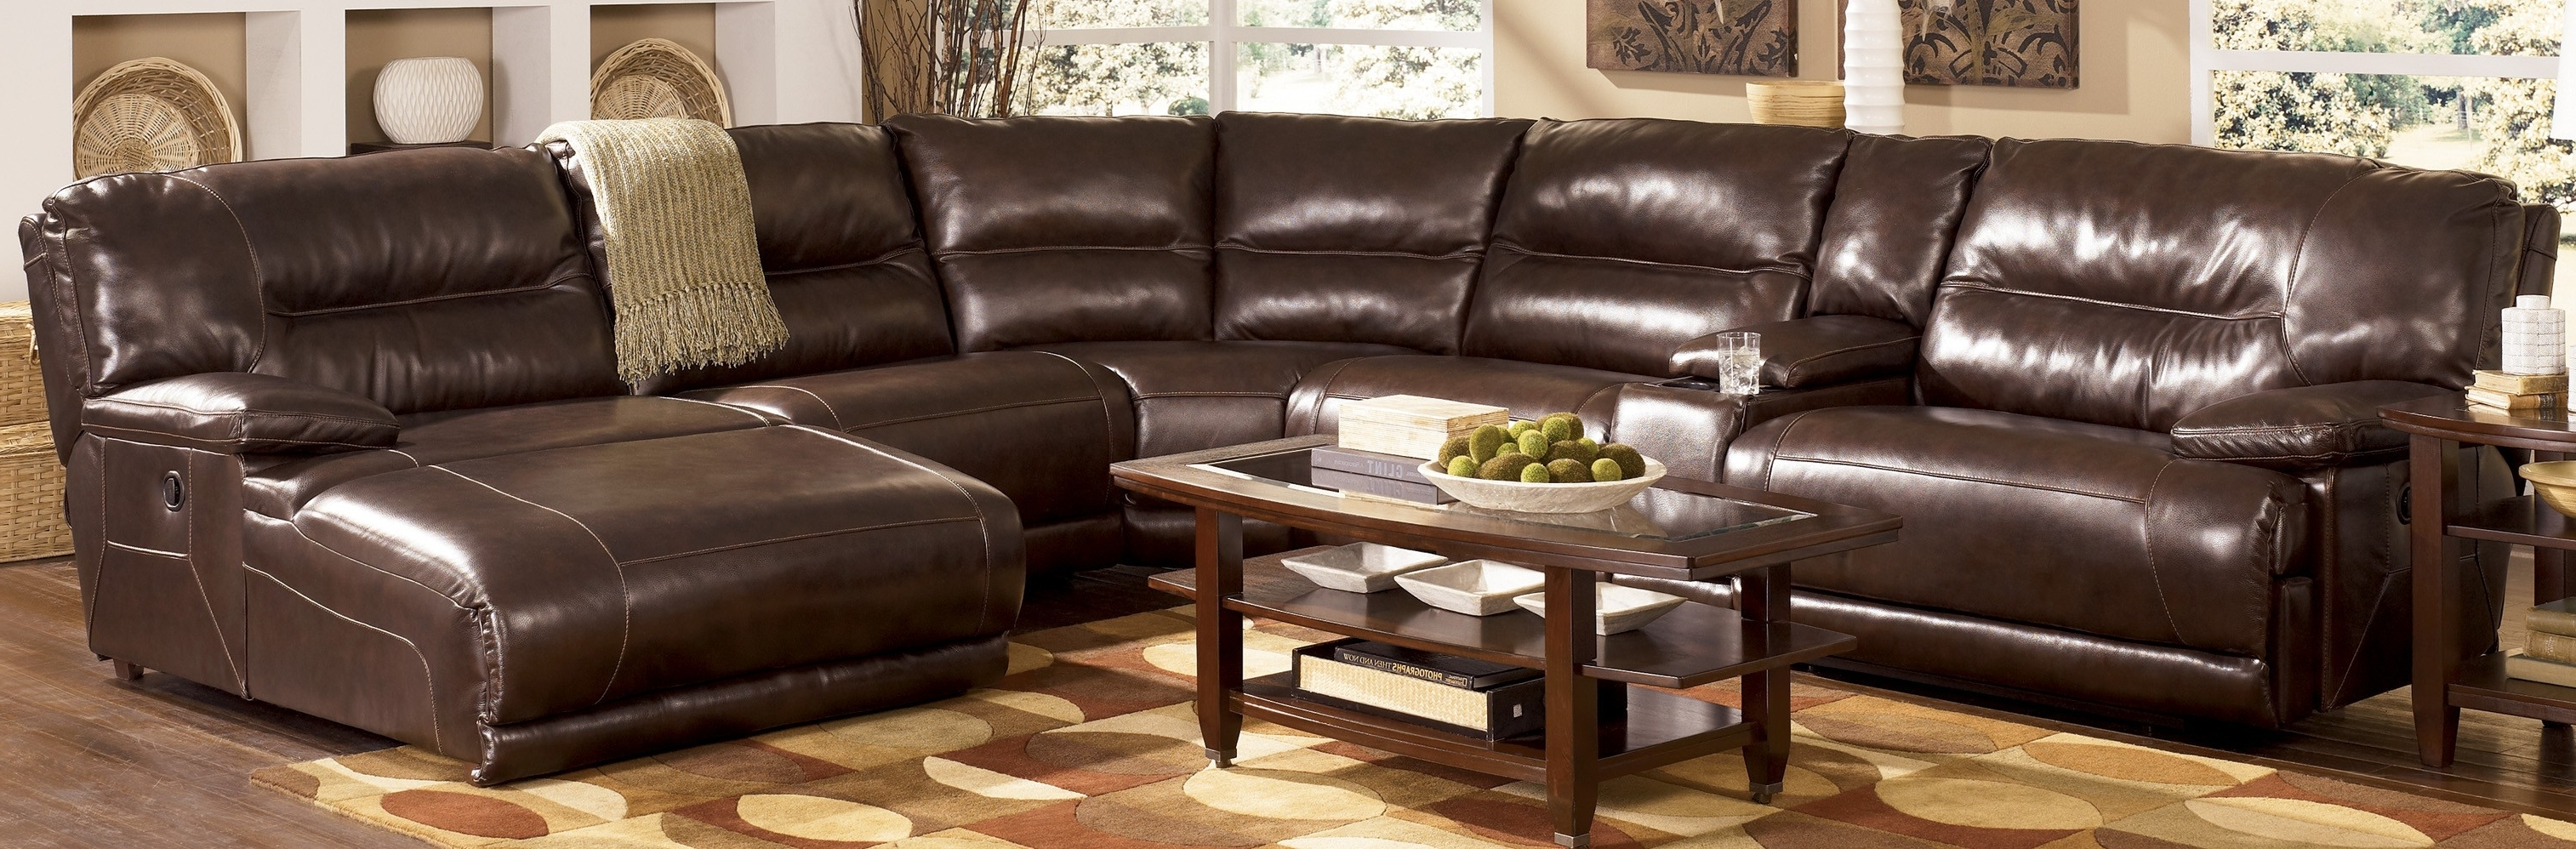 Latest Leather Sectional Sleeper Sofa Sectional Sofas With Recliners And With Coffee Tables For Sectional Sofa With Chaise (View 14 of 15)